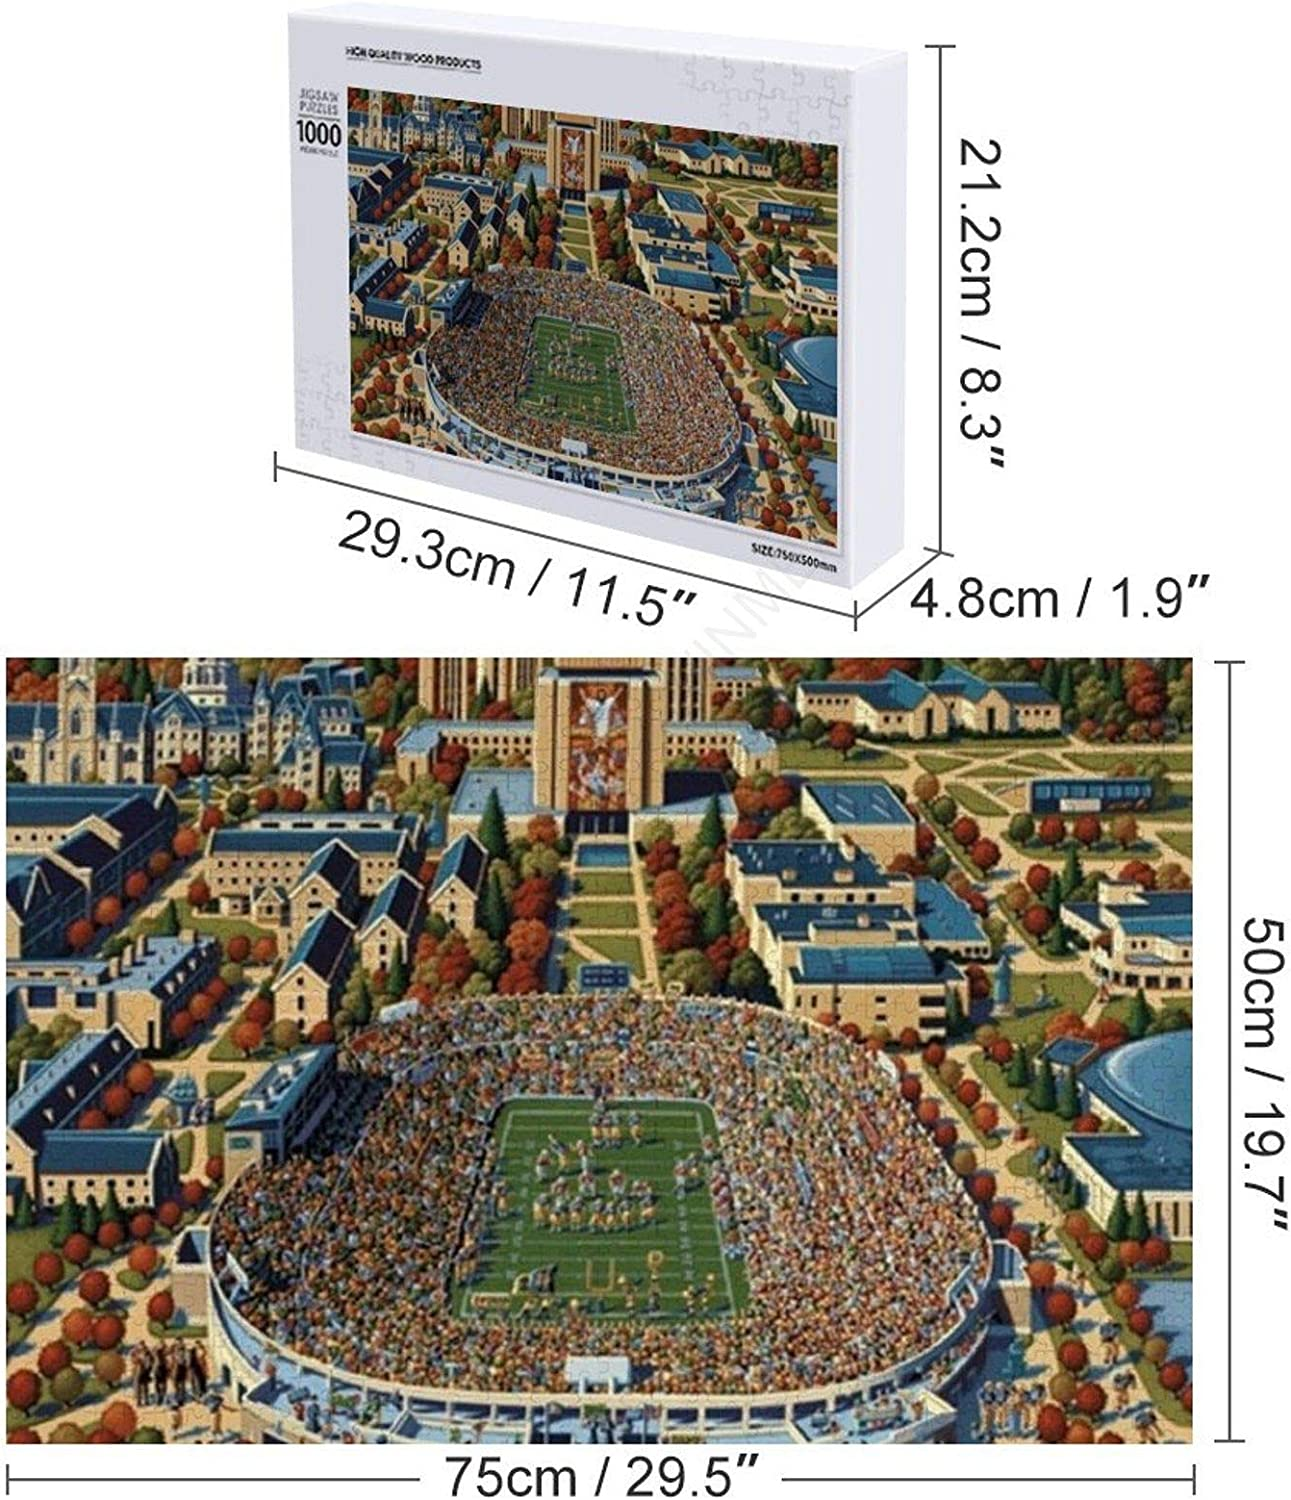 1000 Pieces Wooden Jigsaw Puzzle For Family Game Notre Dame Football Puzzle For Adults Teens /& Children Decompressing Fun Game